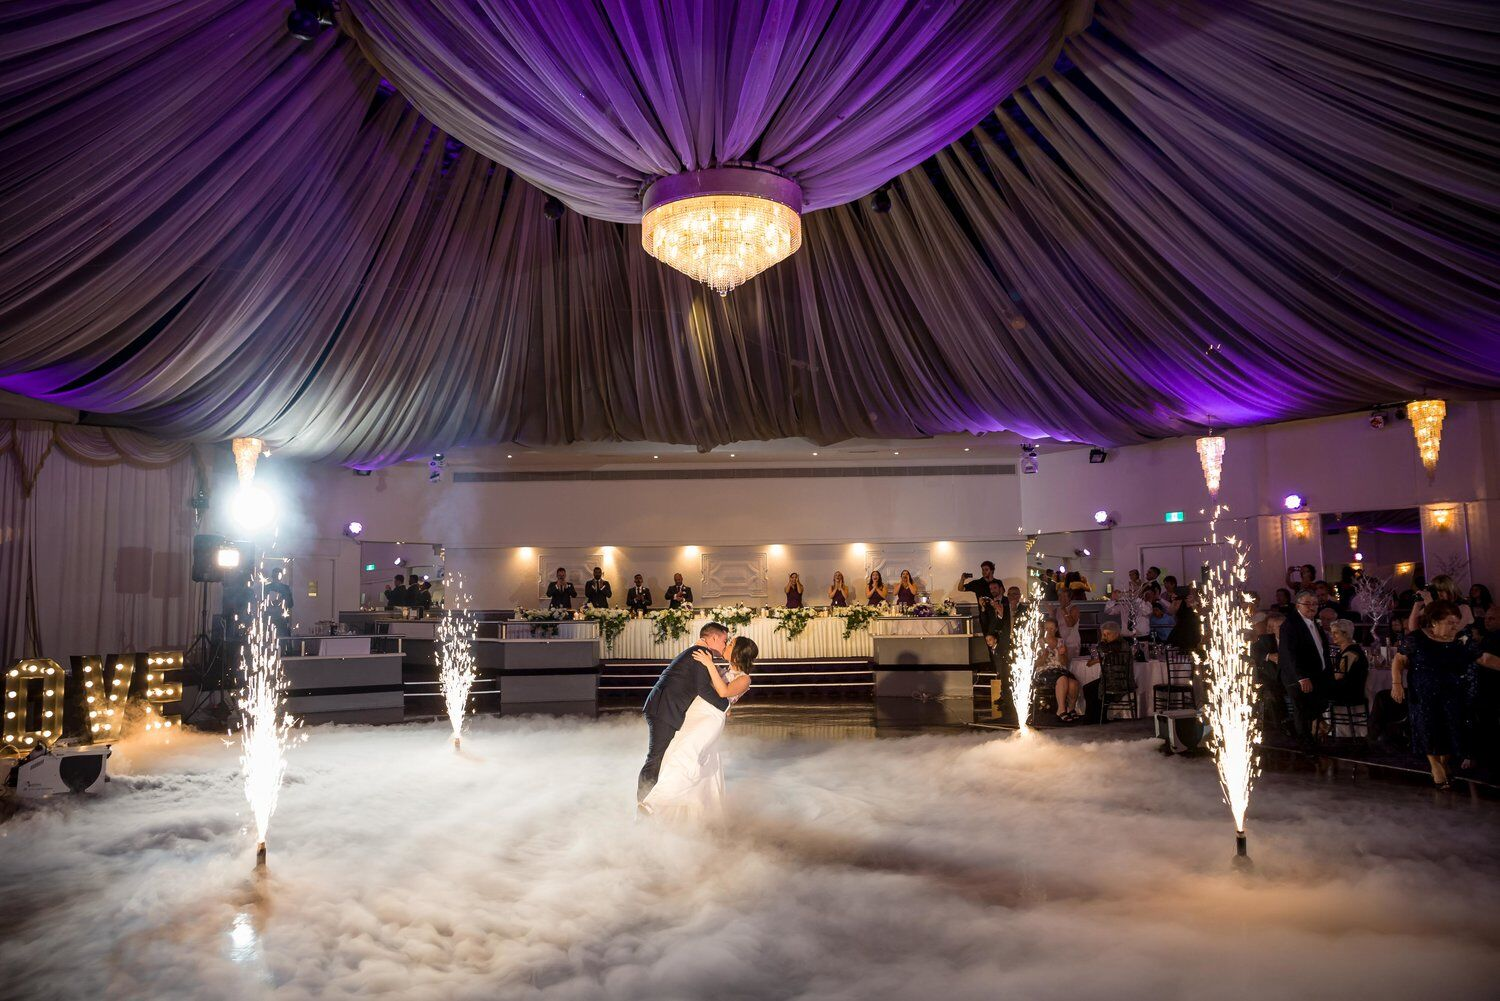 bride and groom under lighted canopy with fireworks in corners